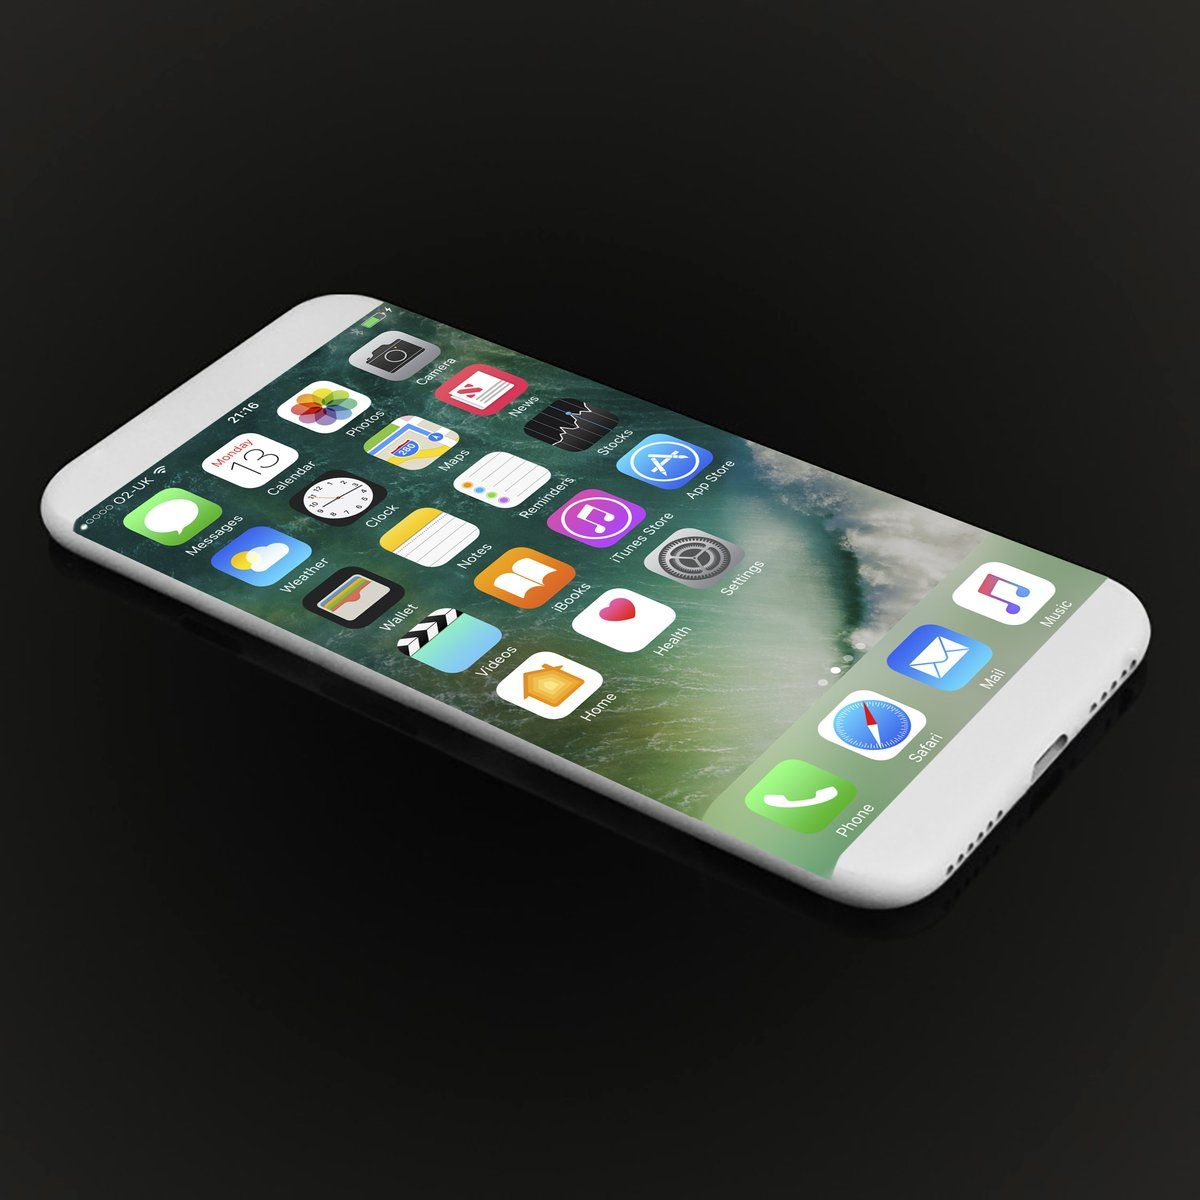 In Apple Could Release Four New Handsets Here Are The Latest IPhone 8 Rumors As We See It Check Back For Updates Coming Months